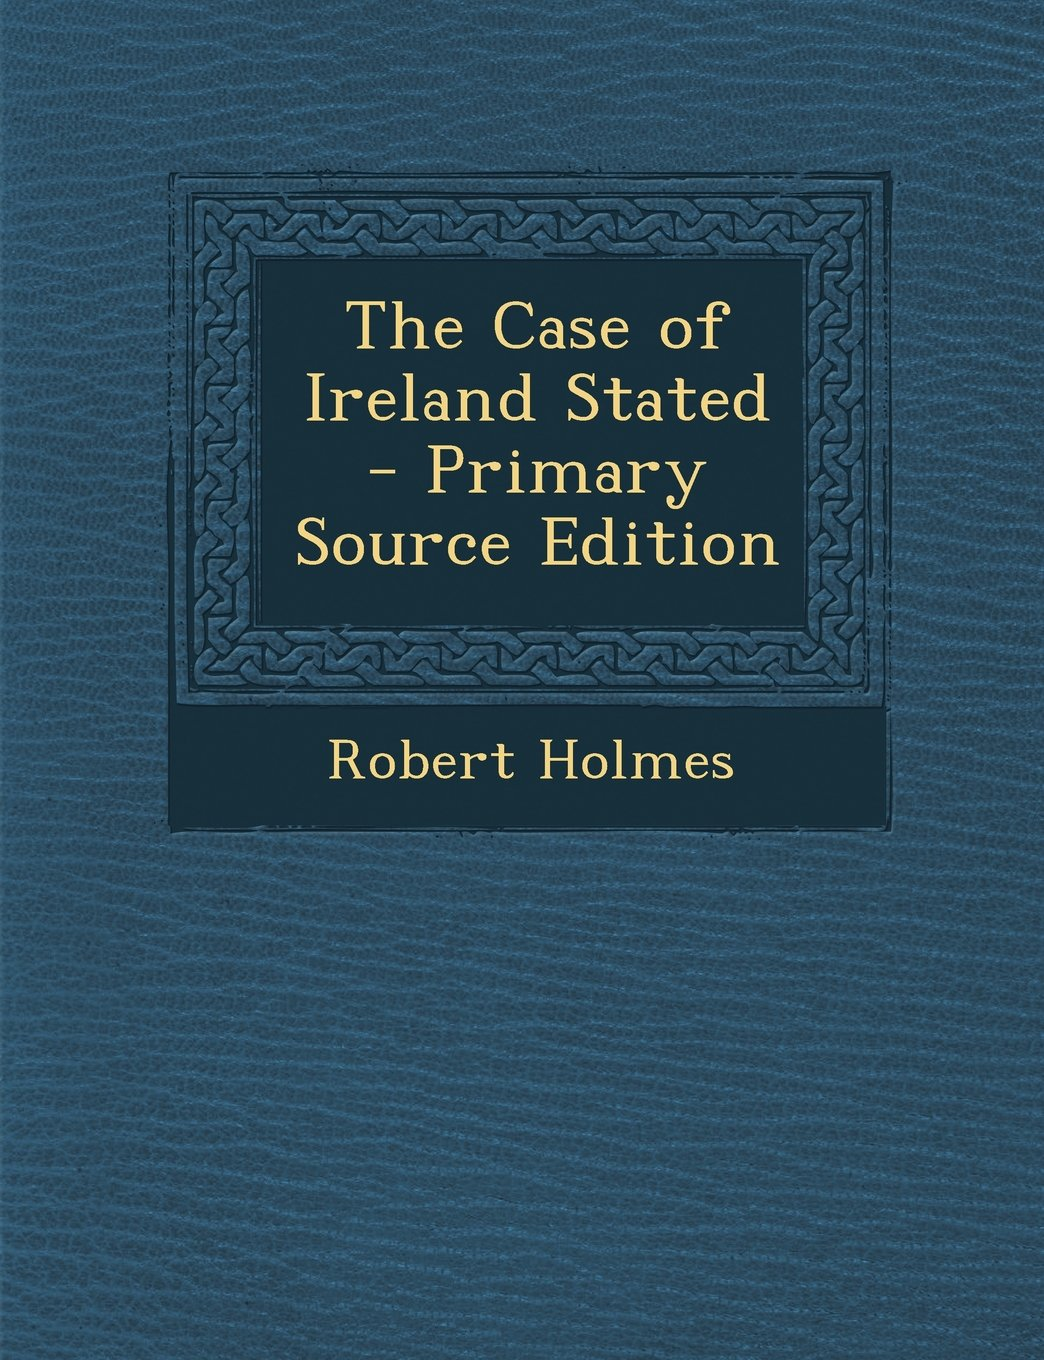 The Case of Ireland Stated - Primary Source Edition PDF